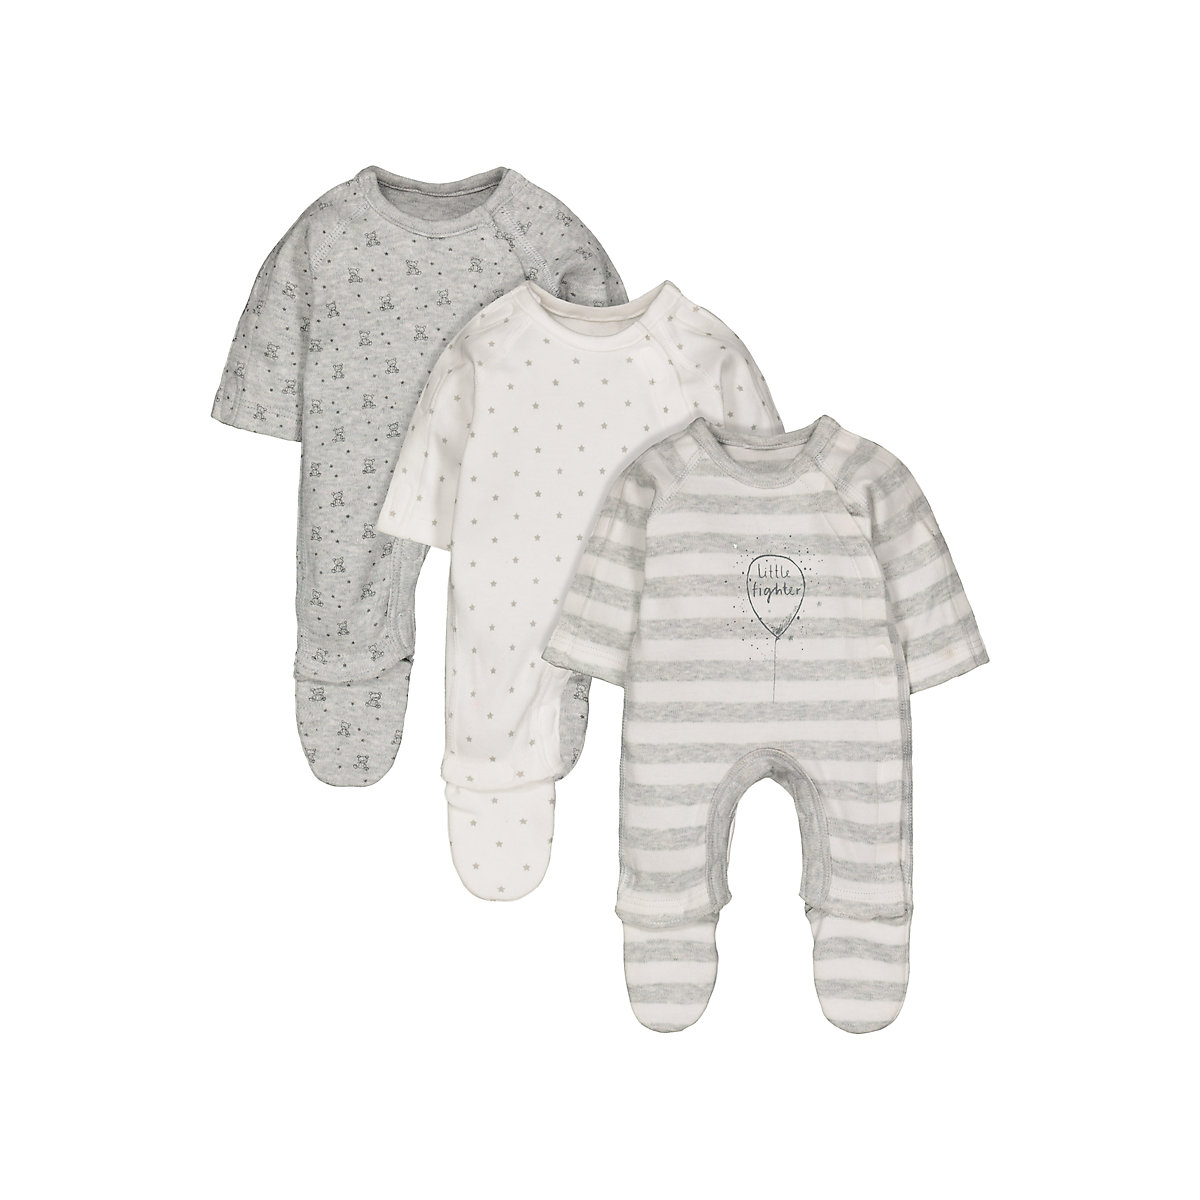 grey premature baby sleepsuits - 3 pack